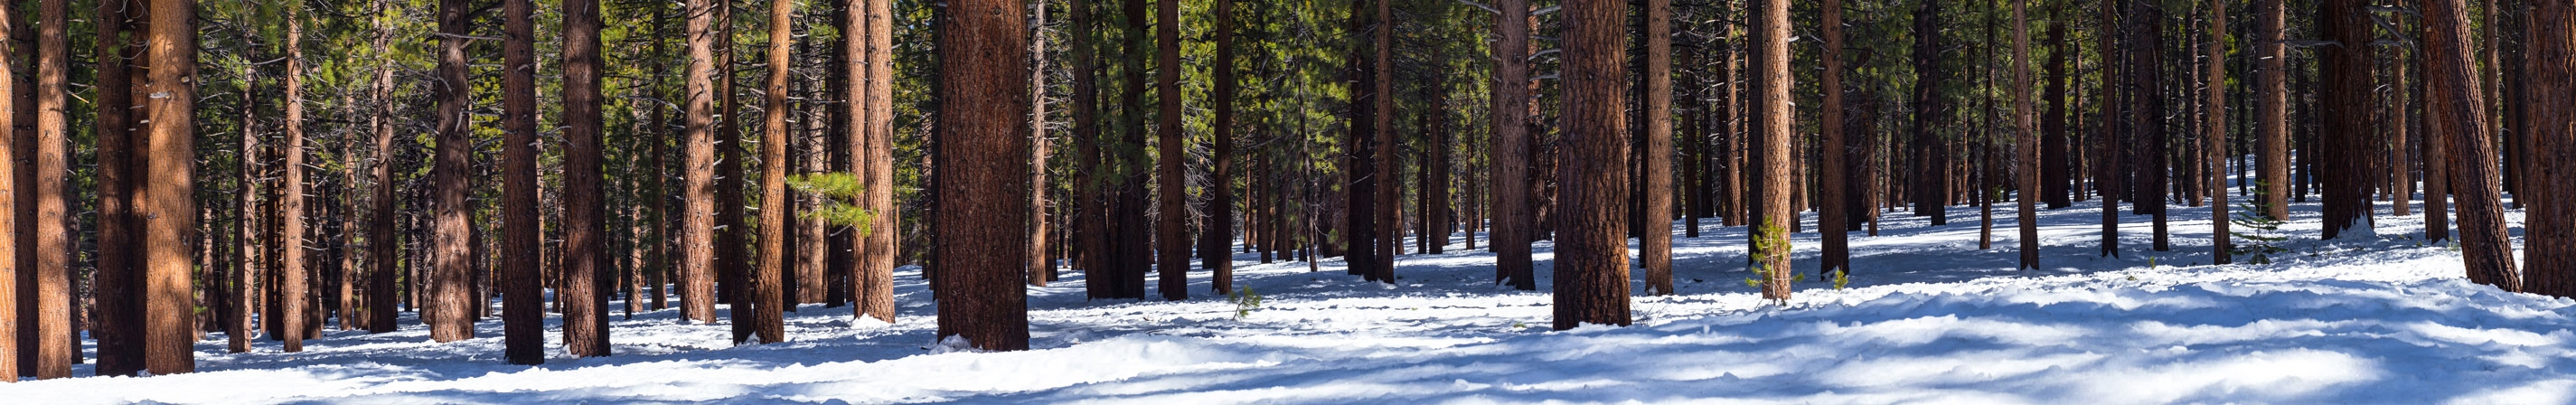 Fir and Yellow Pine at Mammoth Mountain, California